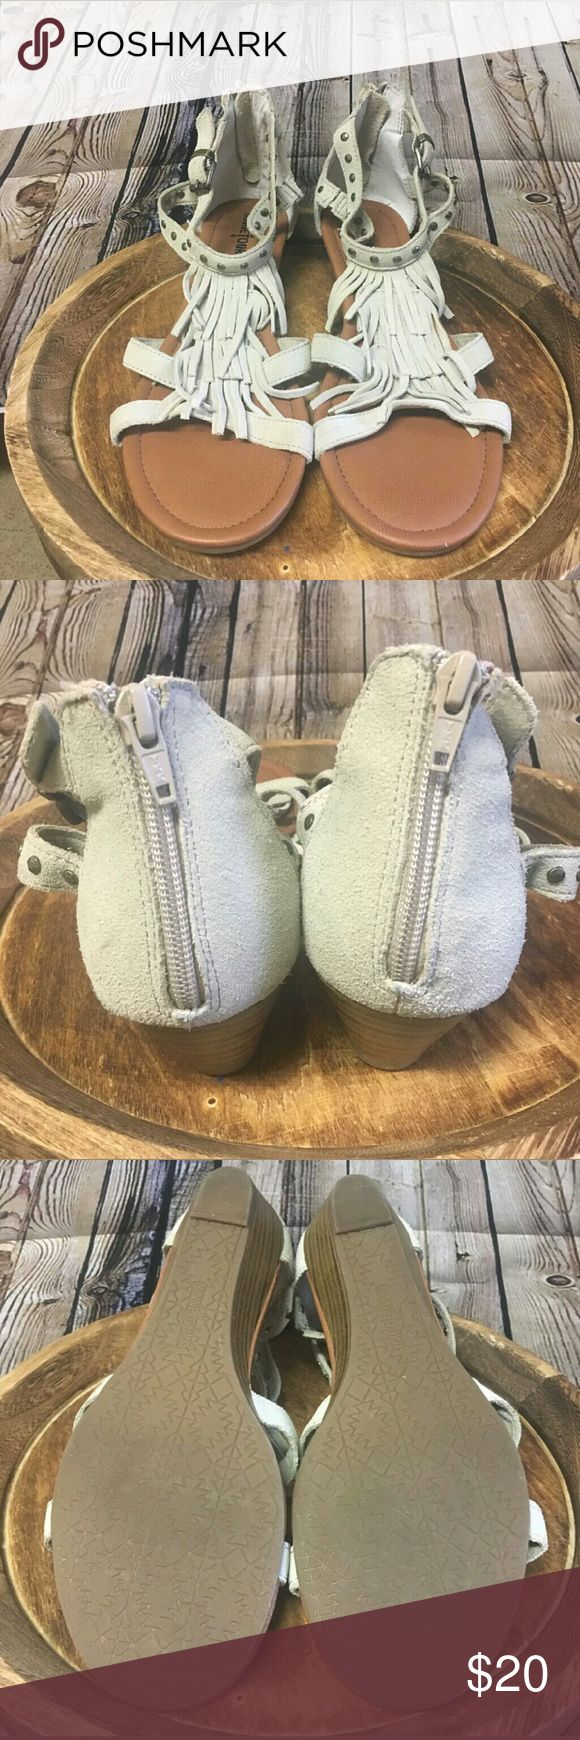 NWoT Minnetonka Fringed Suede Sandals Size 10 Brand new, only tried on Minnetonka Moccasins fringed suede leather sandals. Women's size 10. Grommets on ankle straps, zip back & buckles on ankles. Minnetonka Shoes Sandals